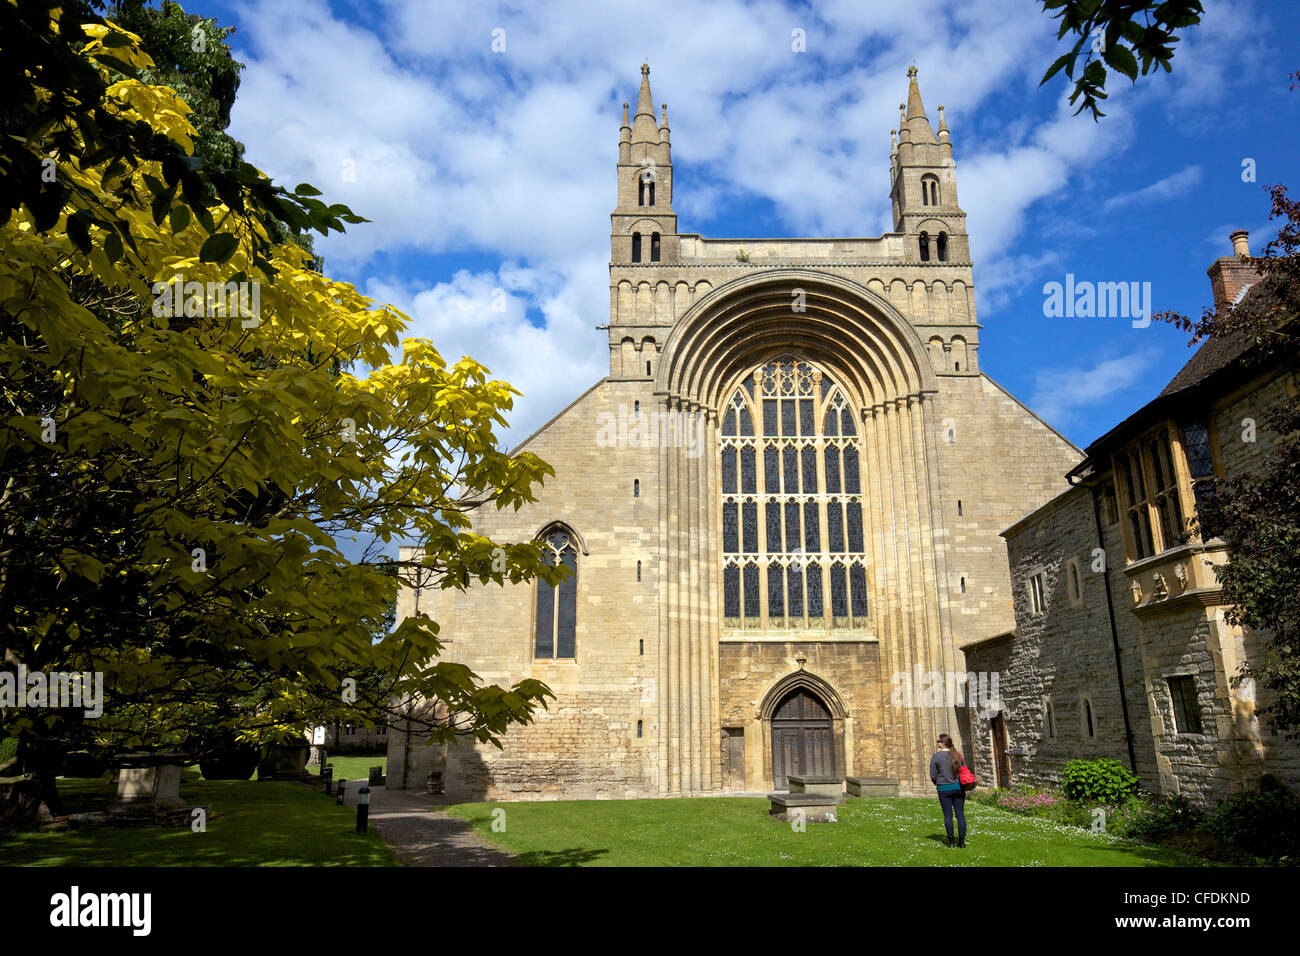 West front of Tewkesbury Abbey (Abbey of the Blessed Virgin), Tewkesbury, Gloucestershire, England, UK - Stock Image